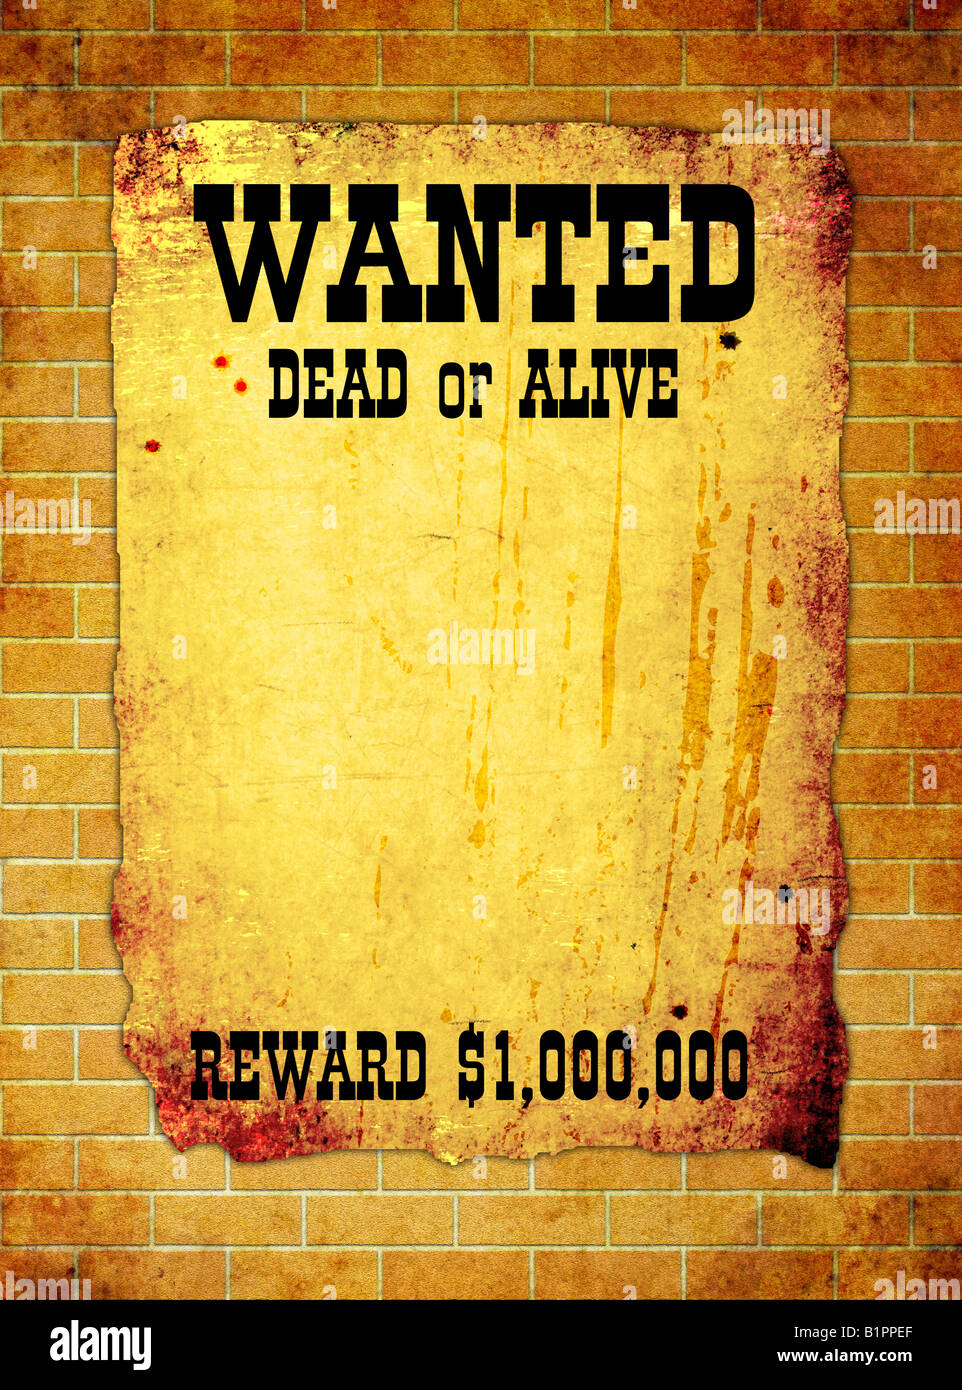 Wanted Poster Stock Photos Wanted Poster Stock Images Alamy